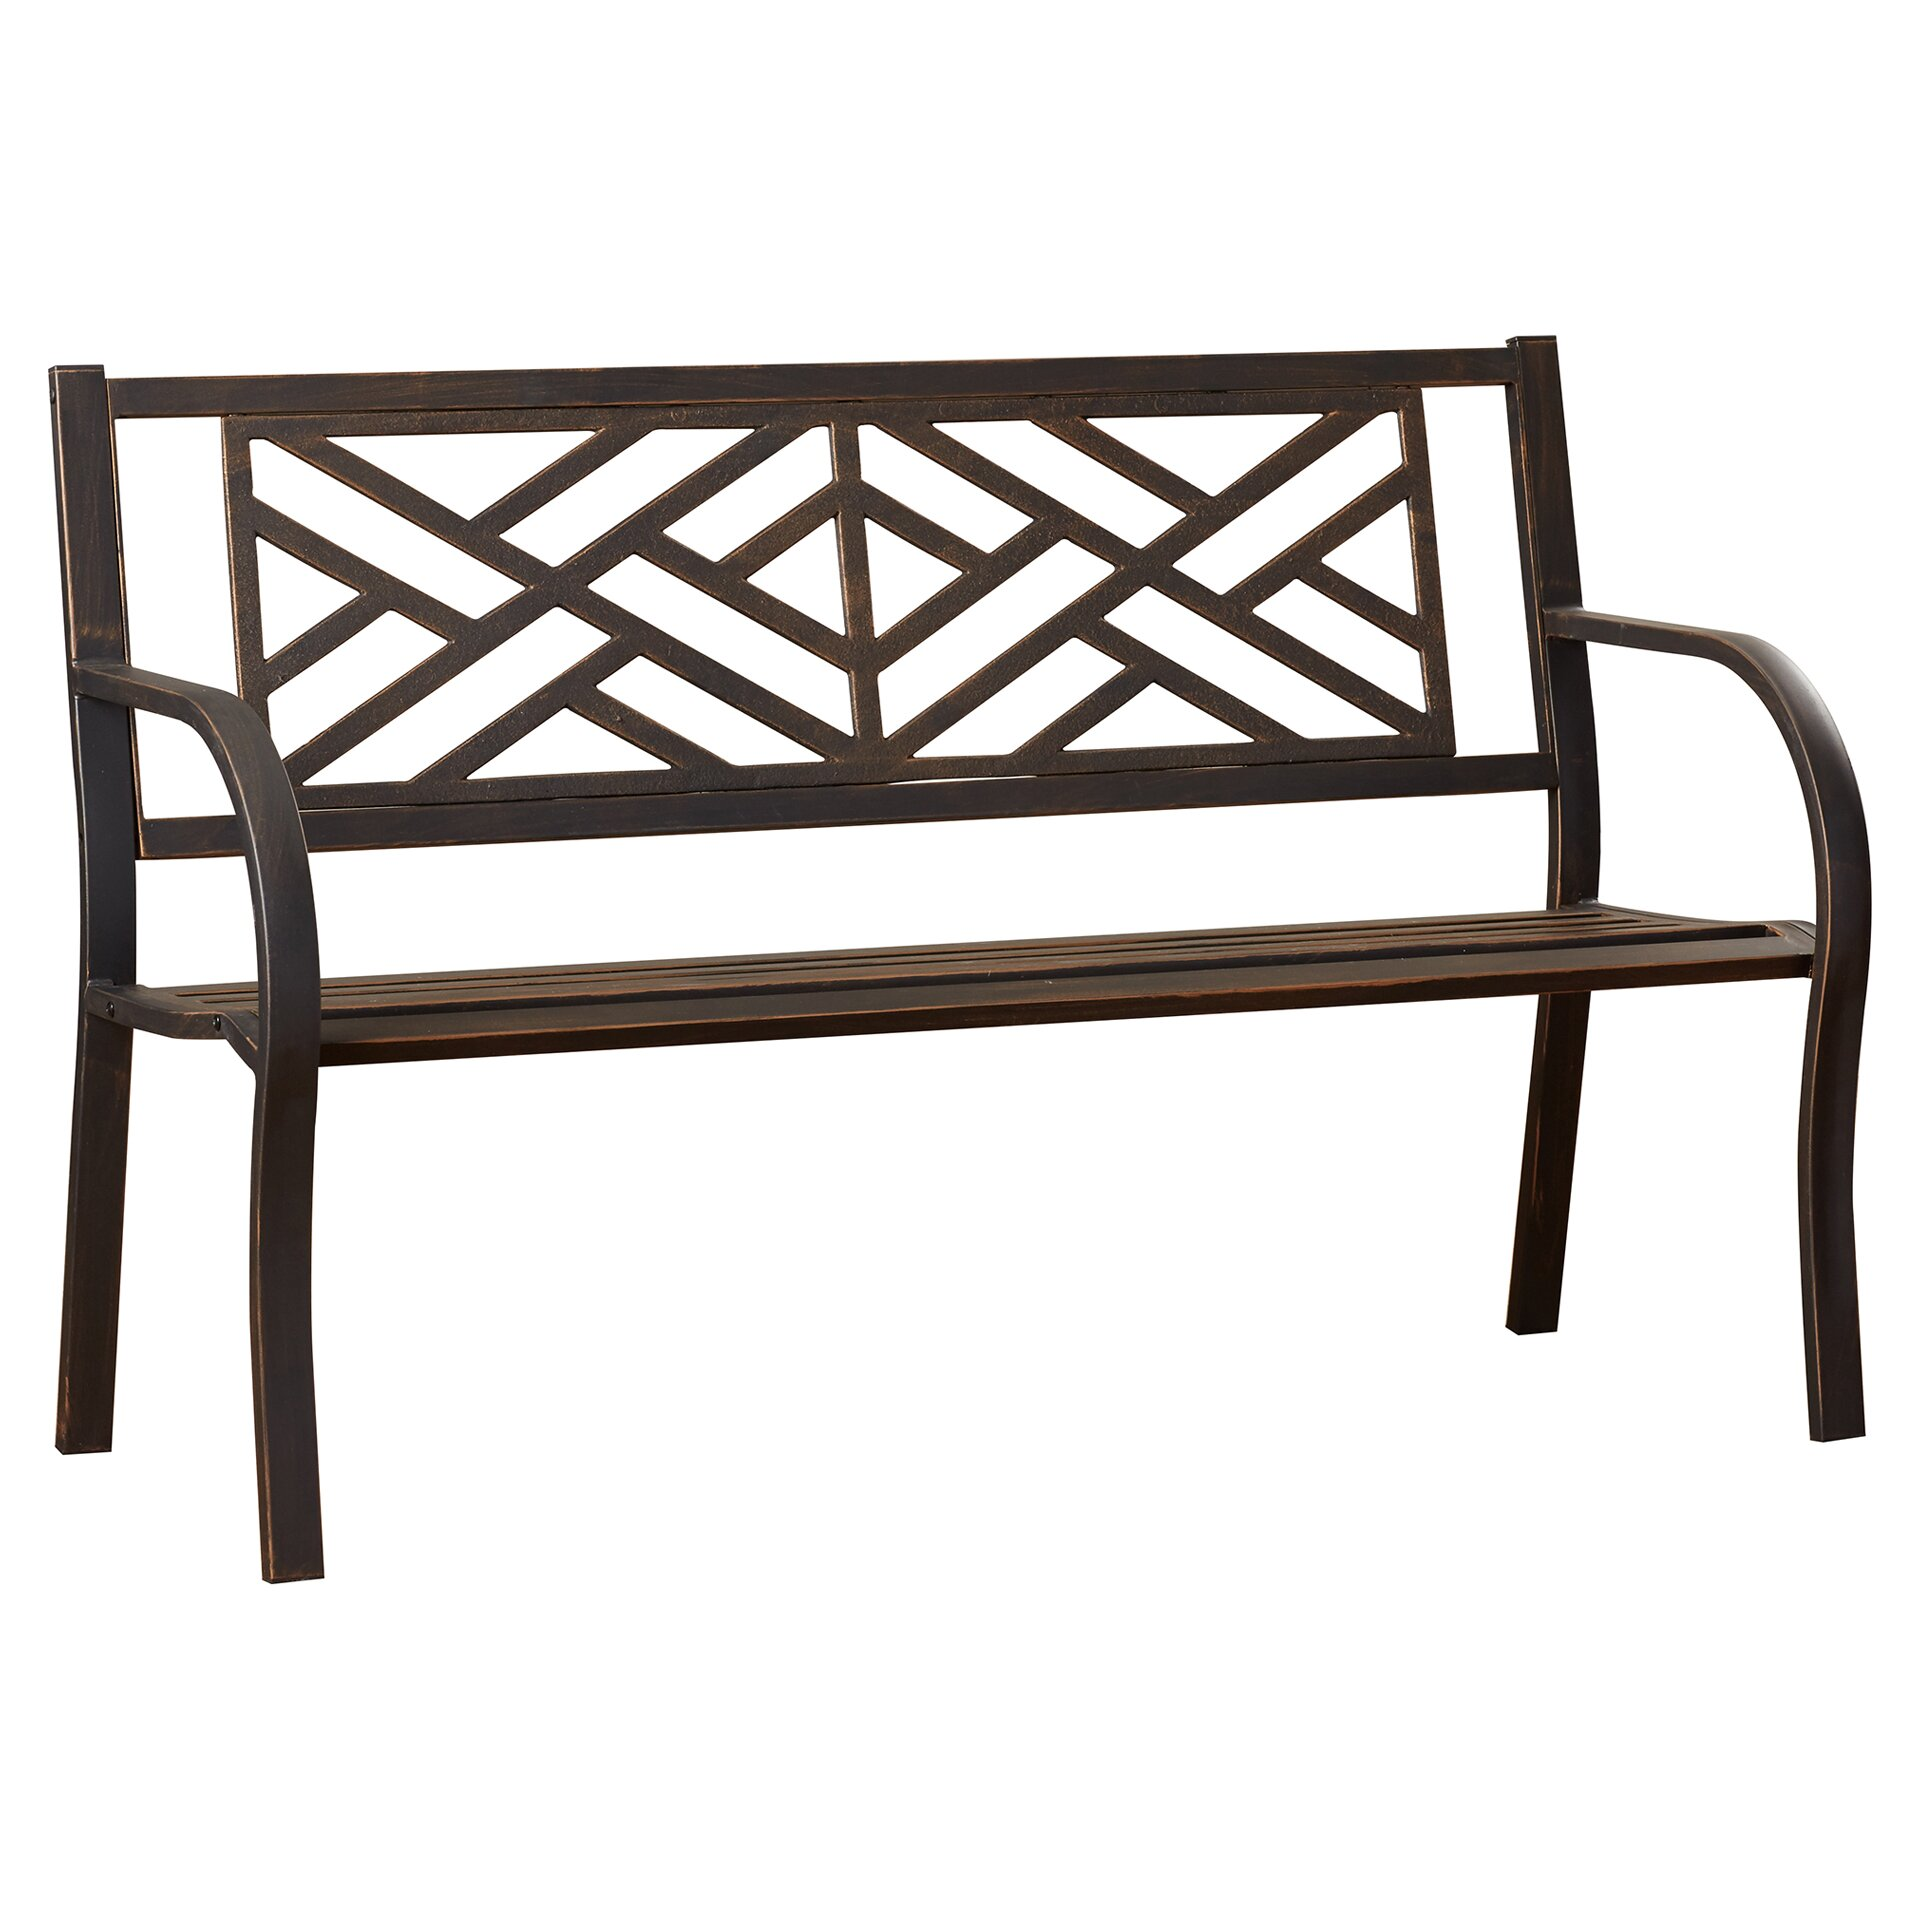 Alcott hill crestshire metal garden bench reviews wayfair Garden benches metal